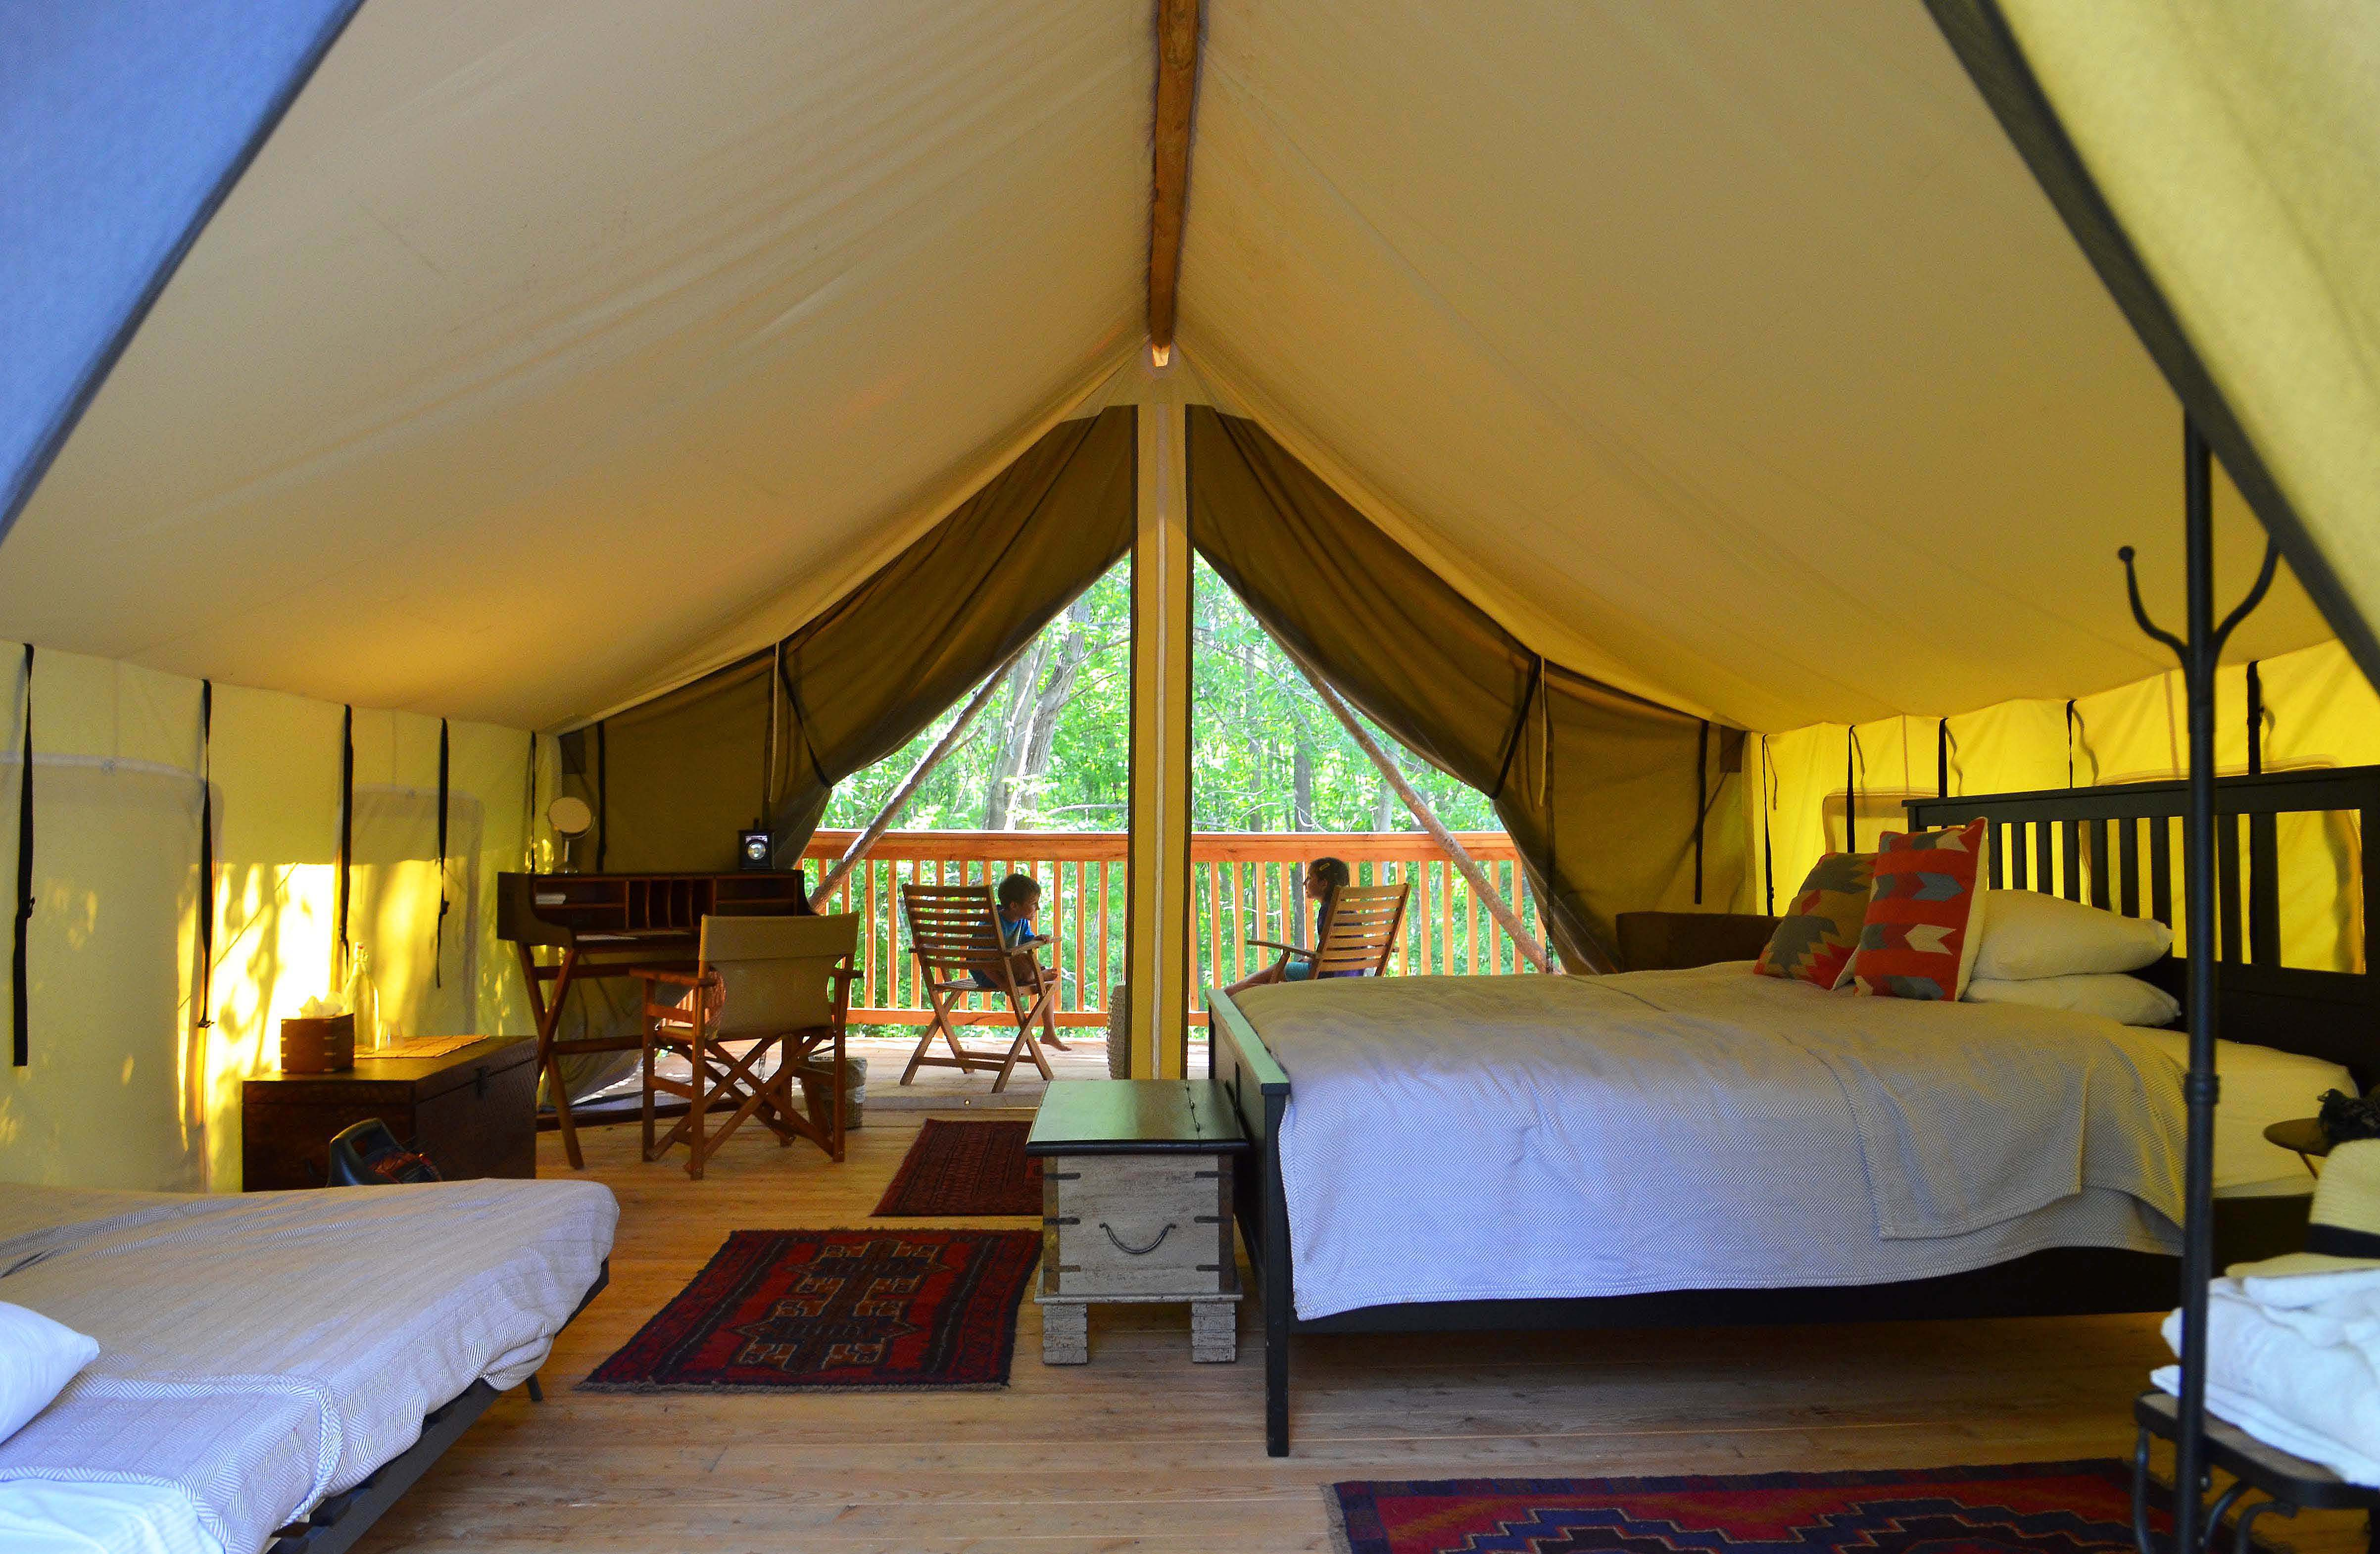 Firelight C&s Safari Tent King Bed Gl&ing Glamorous C&ing ... & nature | MarinoBambinos